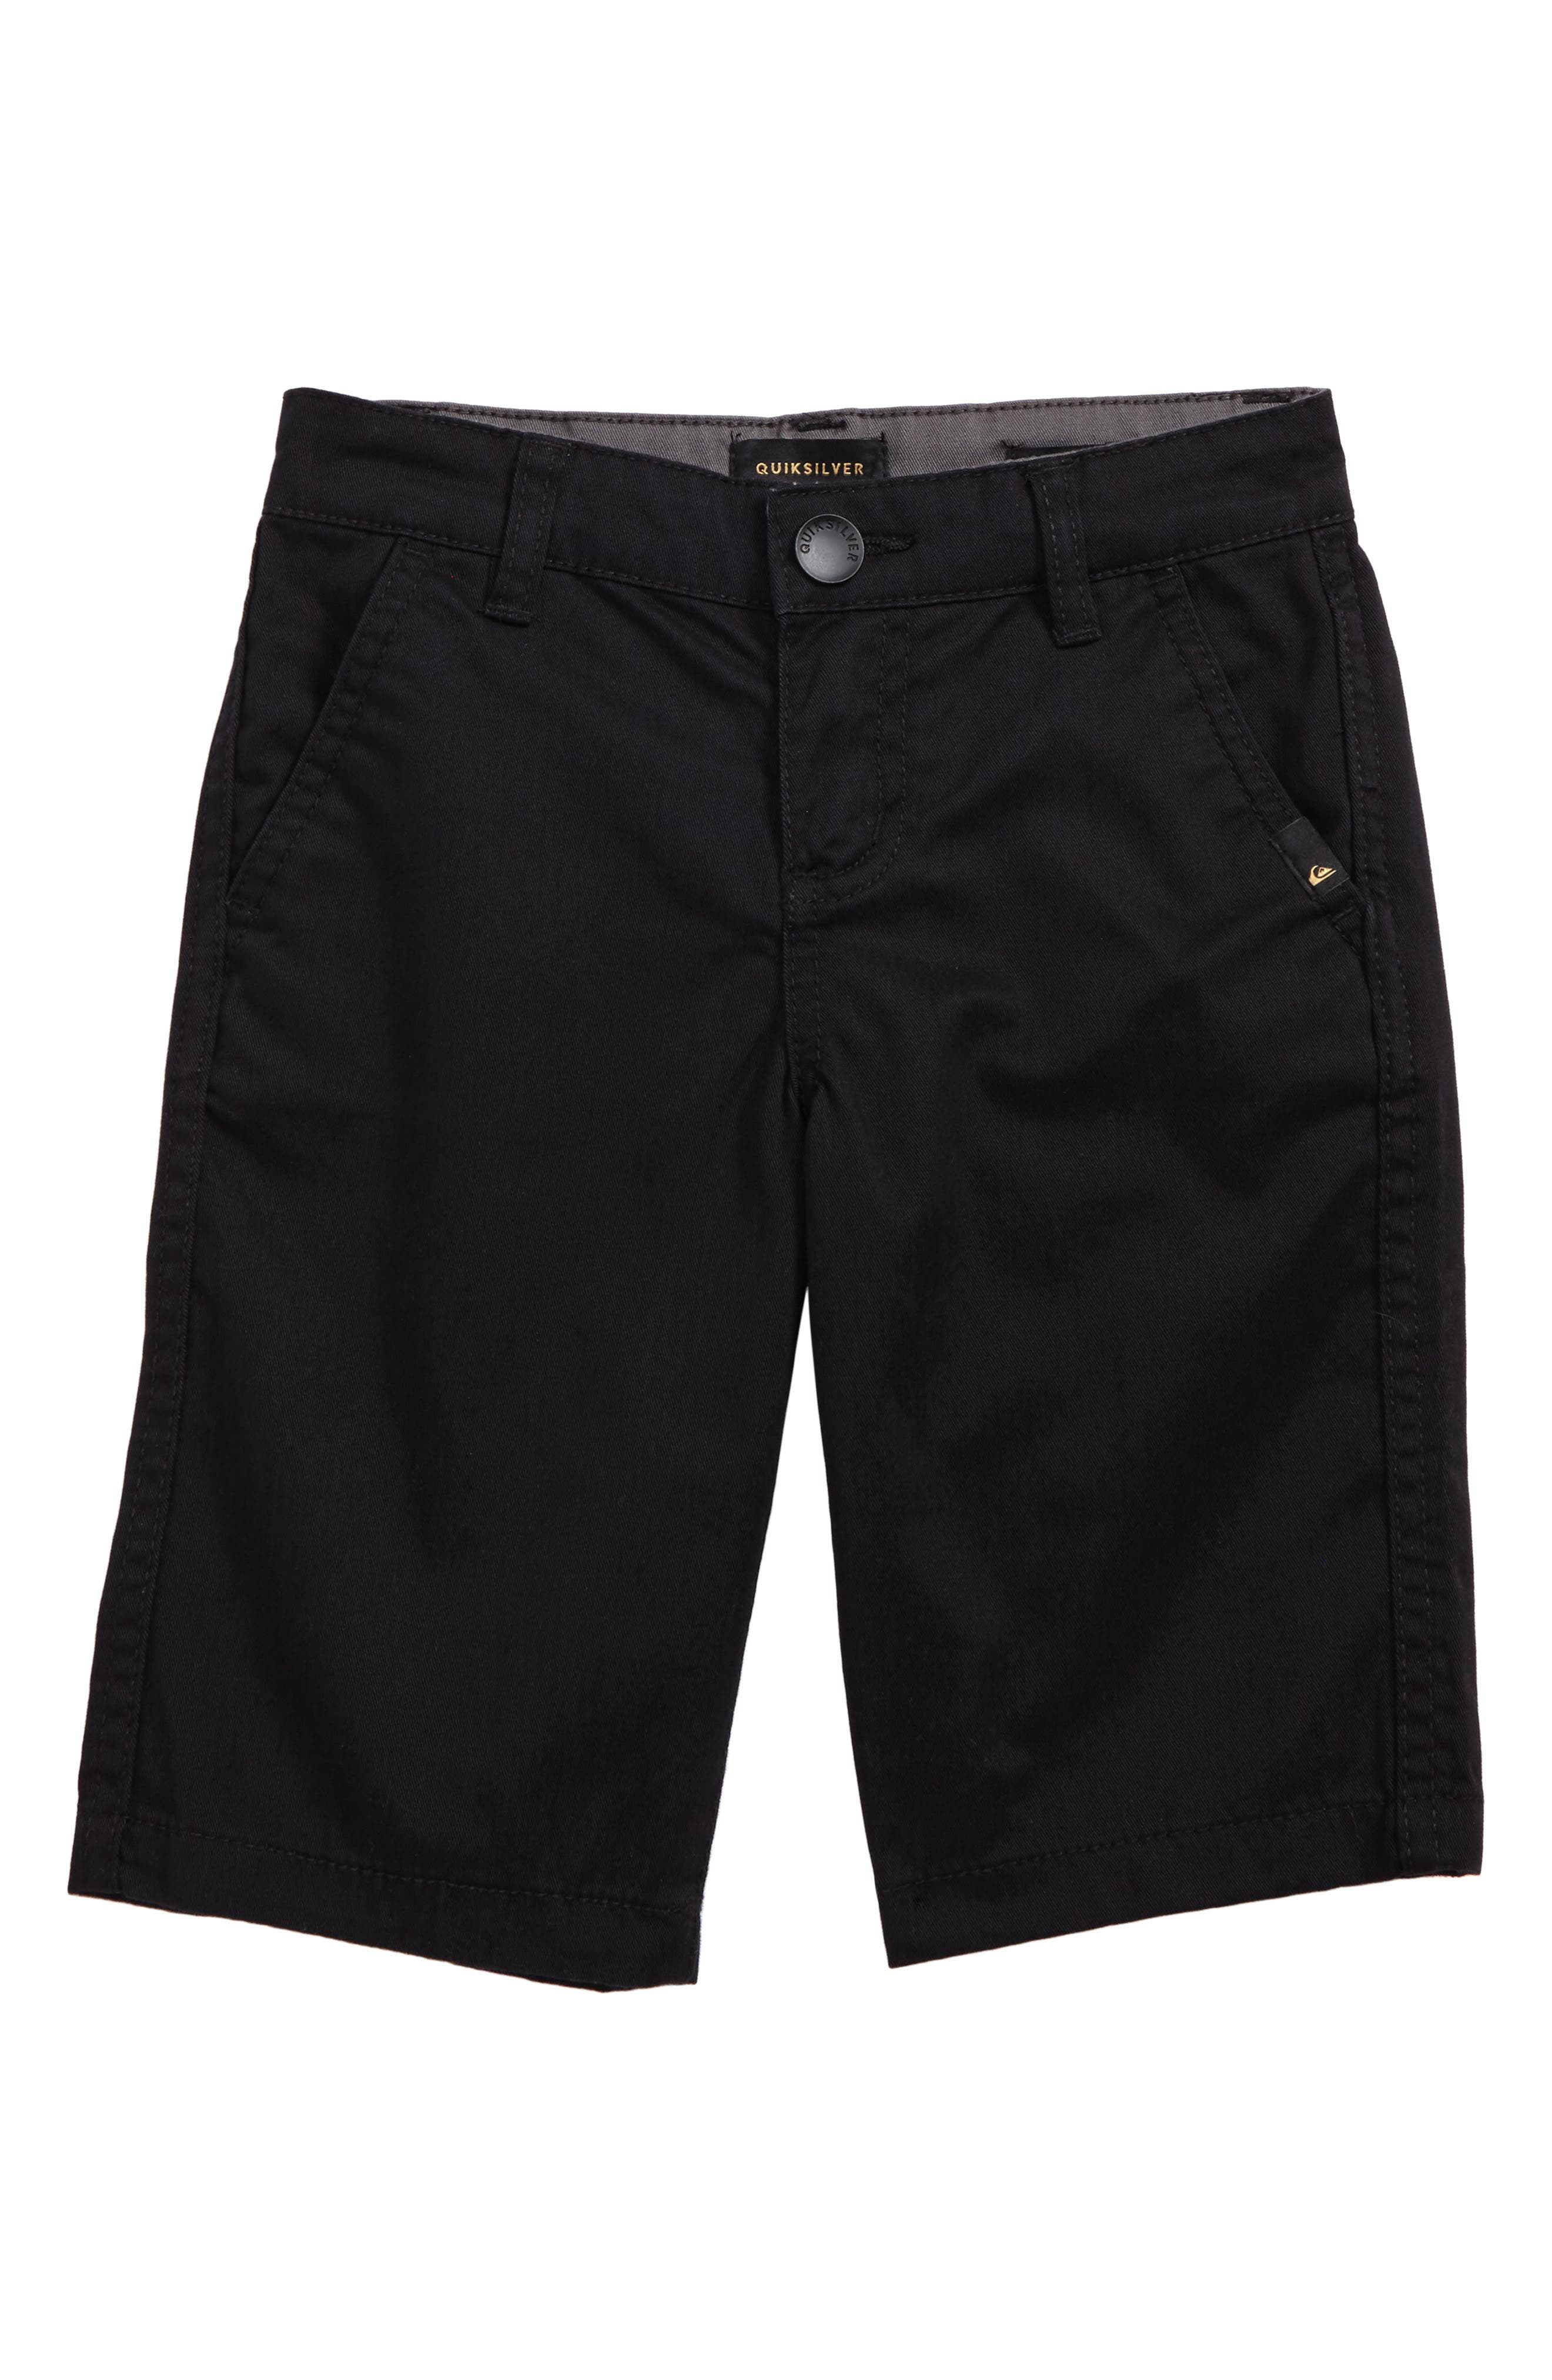 Everyday Union Shorts,                         Main,                         color, 002